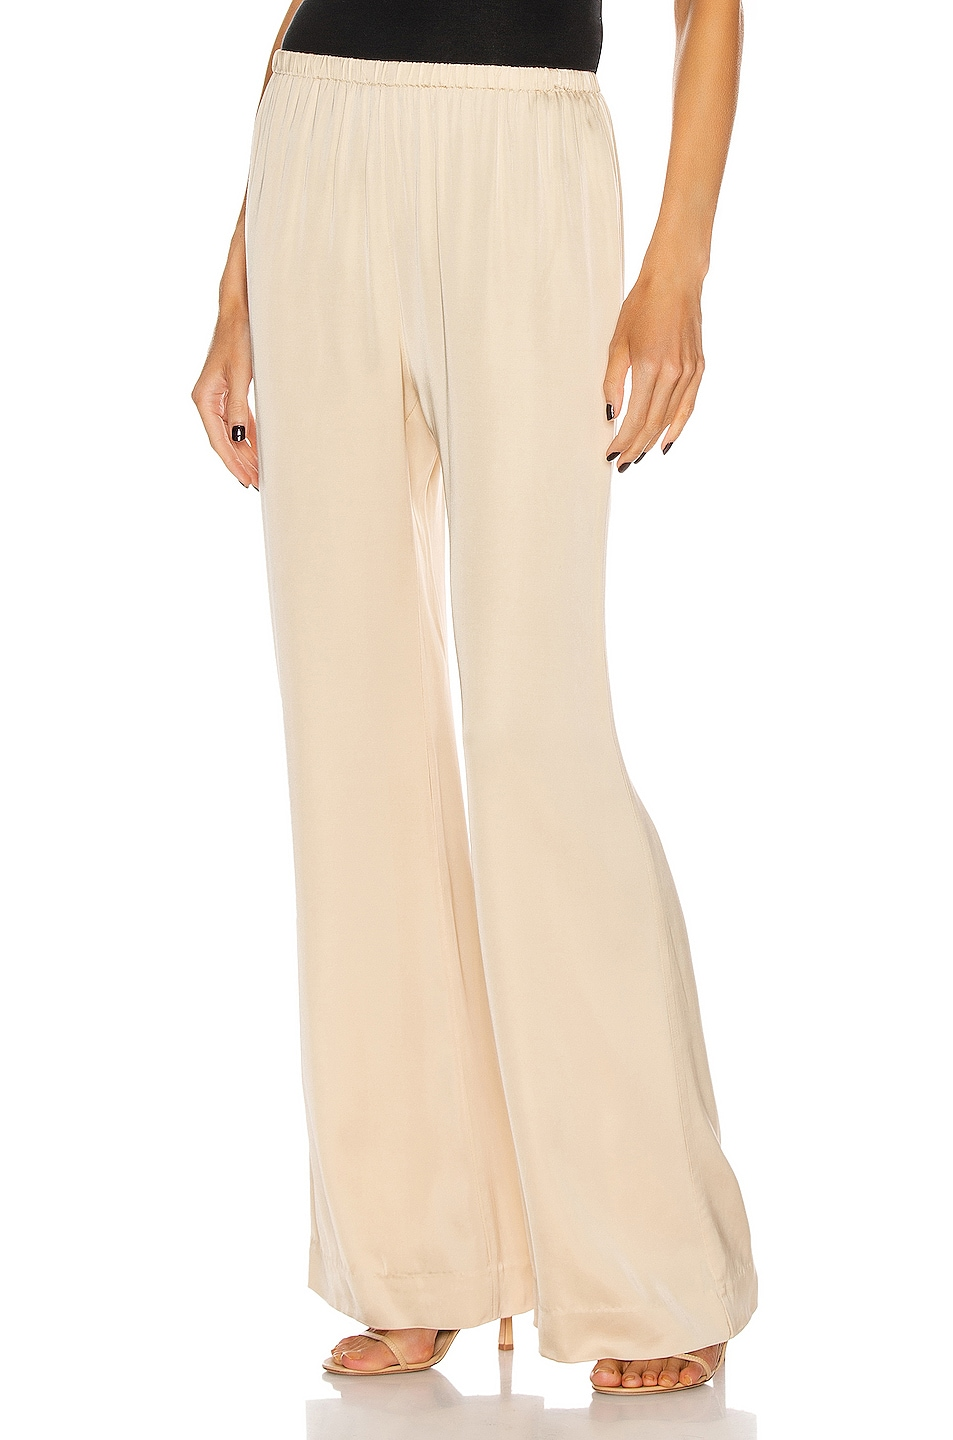 Image 1 of Cult Gaia Stacie Pant in Sand